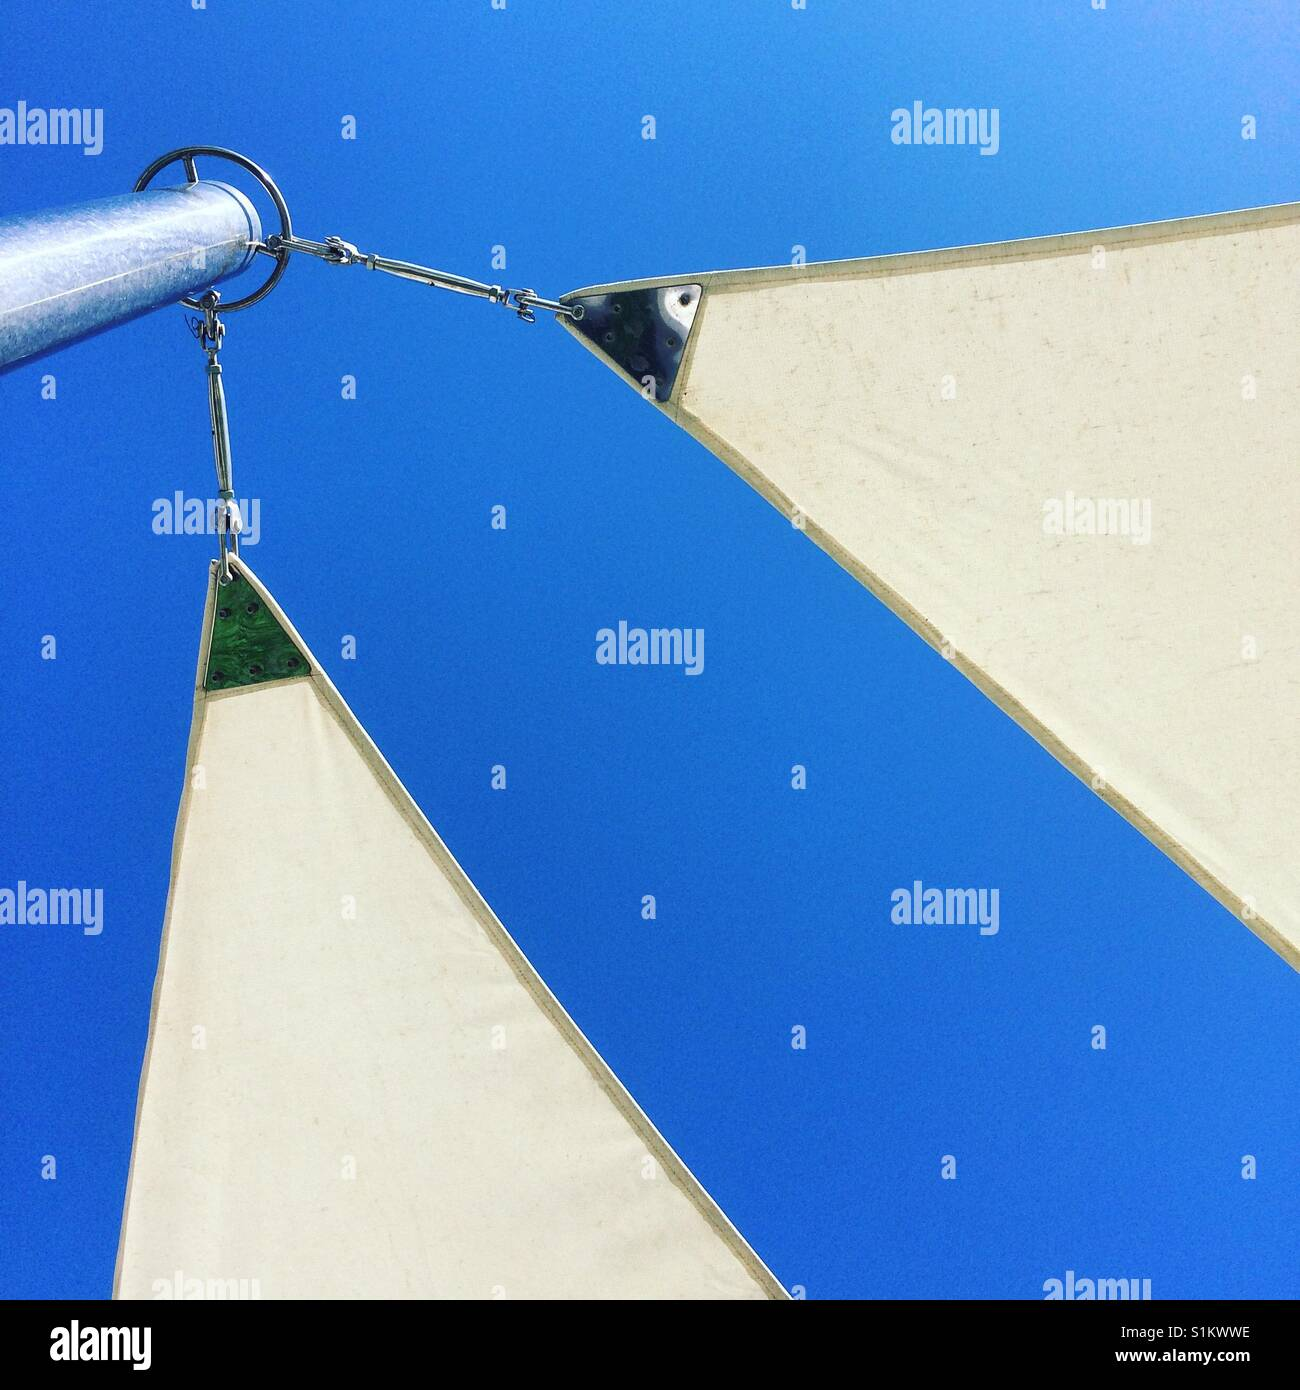 Sunbed View - Stock Image